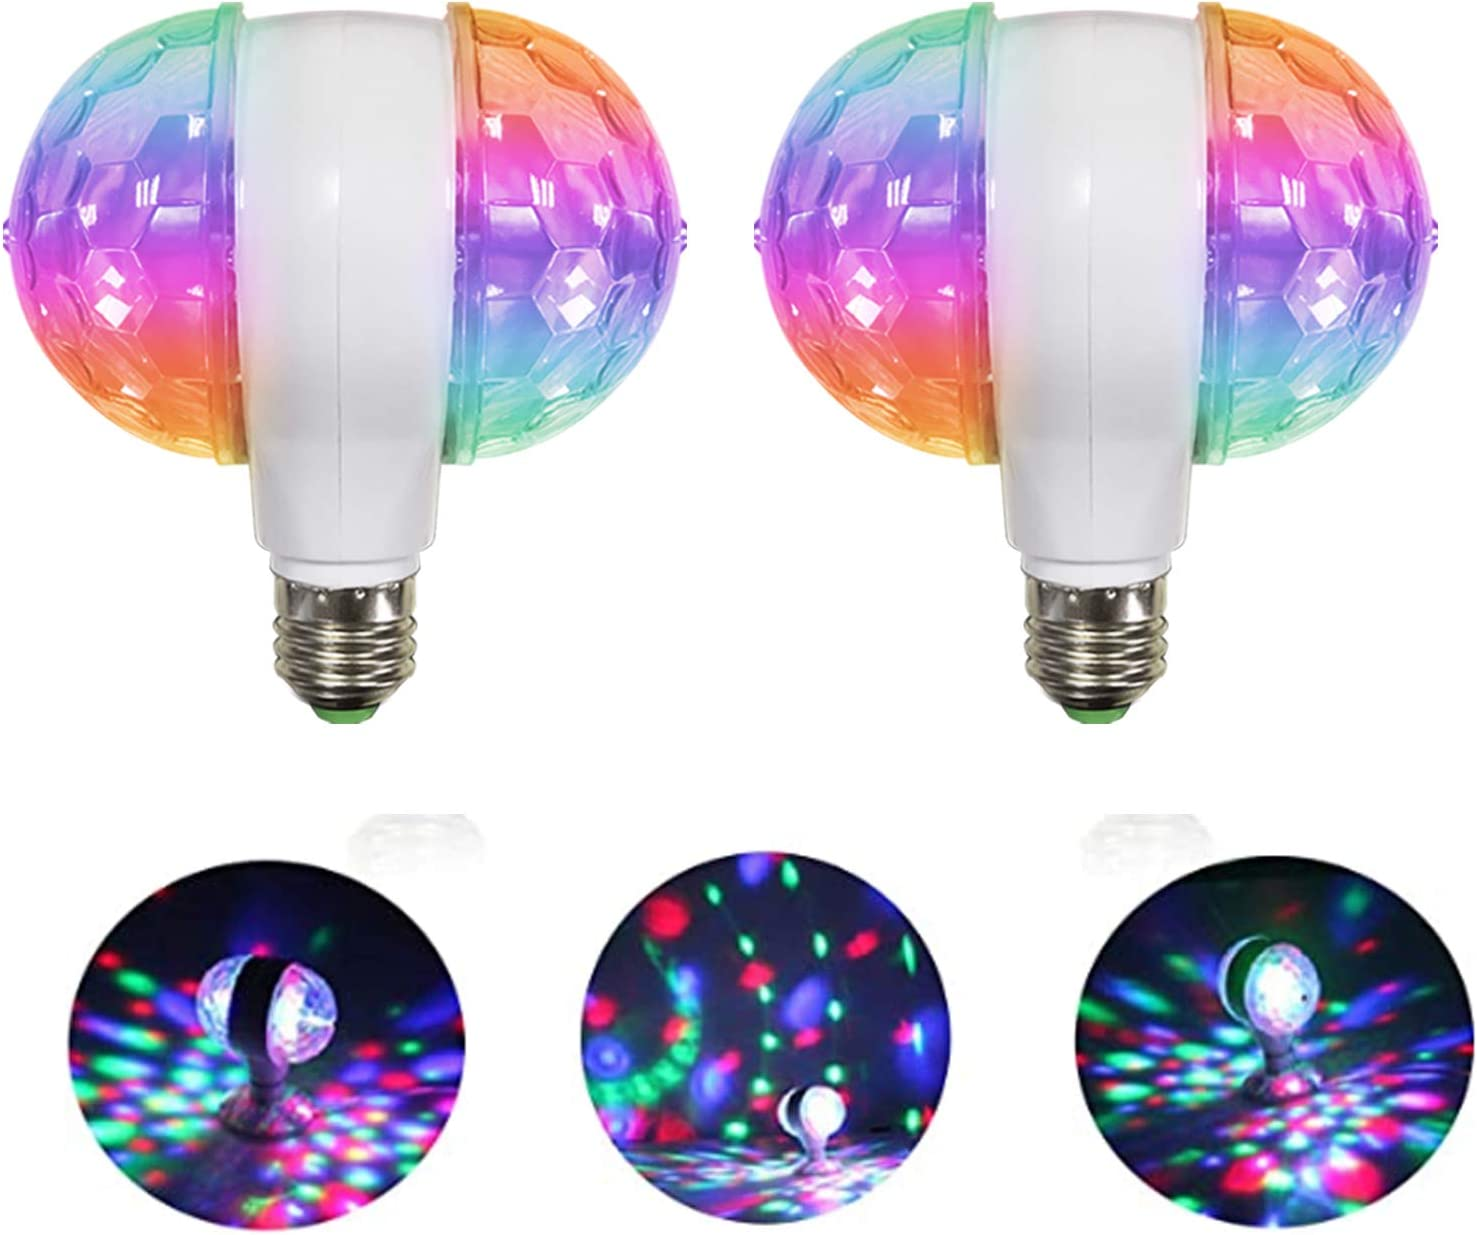 MINO ANT Disco Ball Light Strobe Lights for Parties- 6W E27 RGB Multicolor Led Party Disco Lights Strobe Light DJ Stage Light Bulb Decor for Birthday, Disco, Club, Bar, Home Party, Christmas(2 Pack))